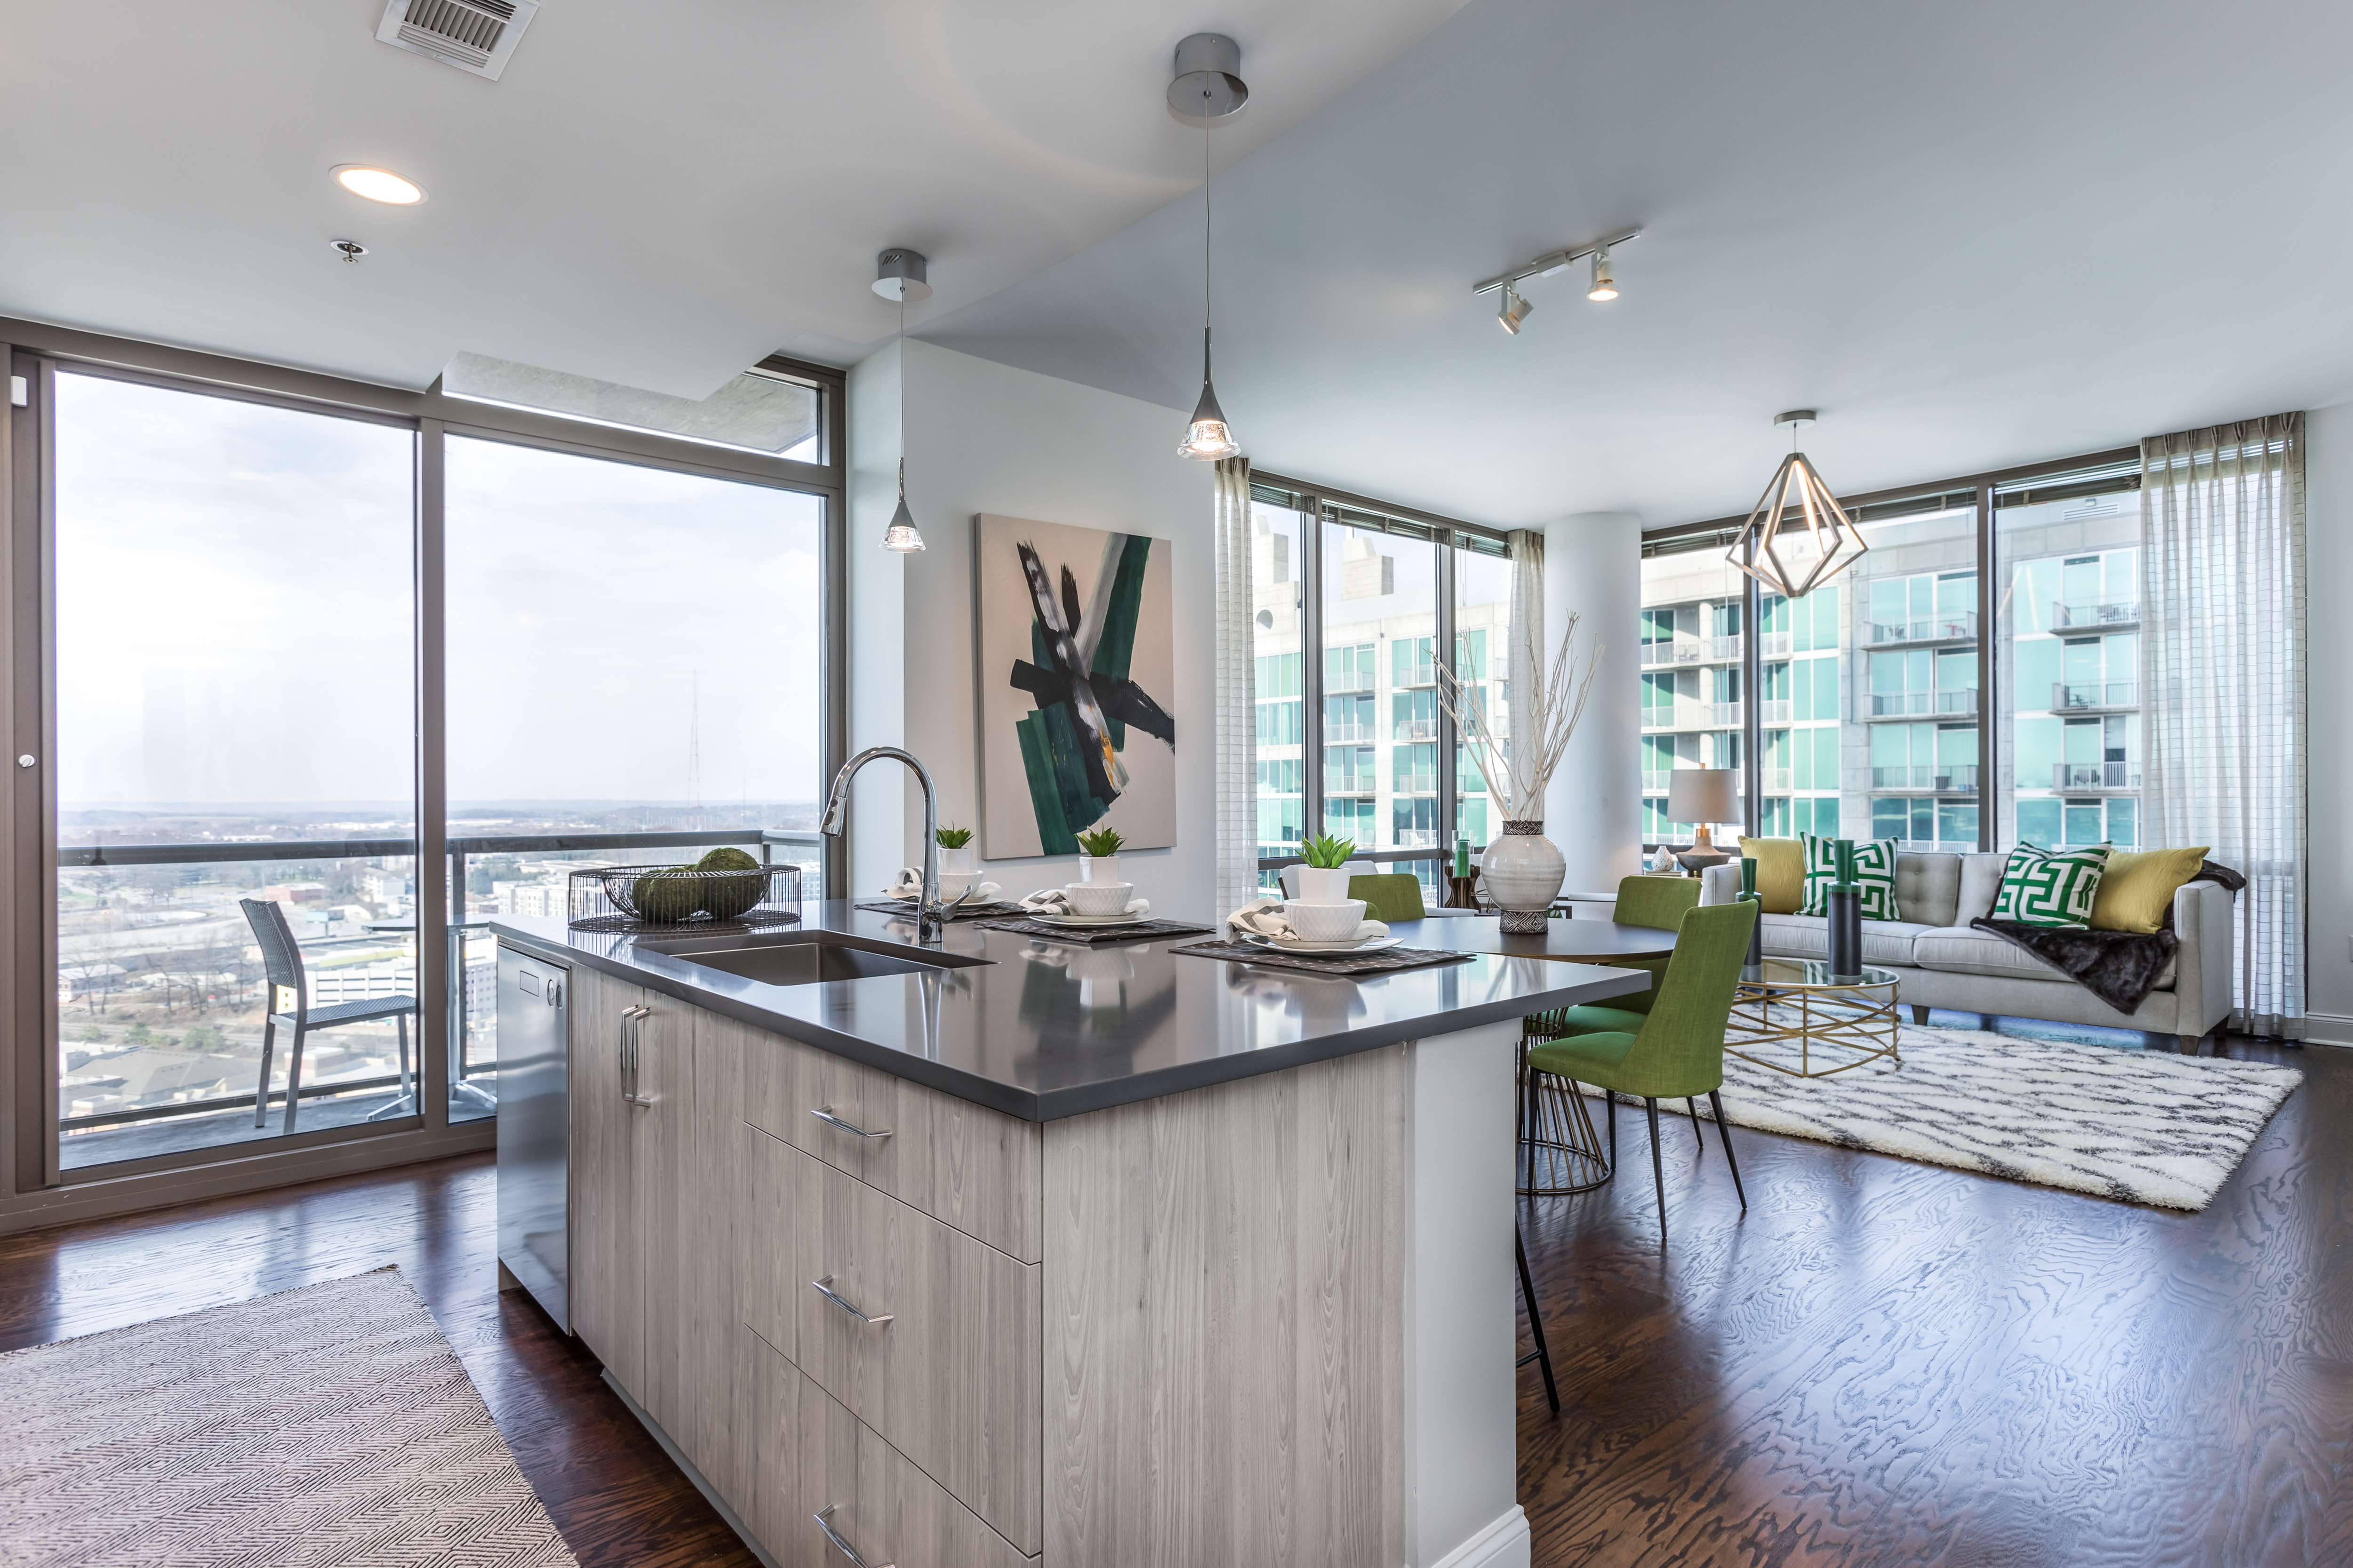 A bright kitchen with hardwood floors, facing an open living space with large windows.